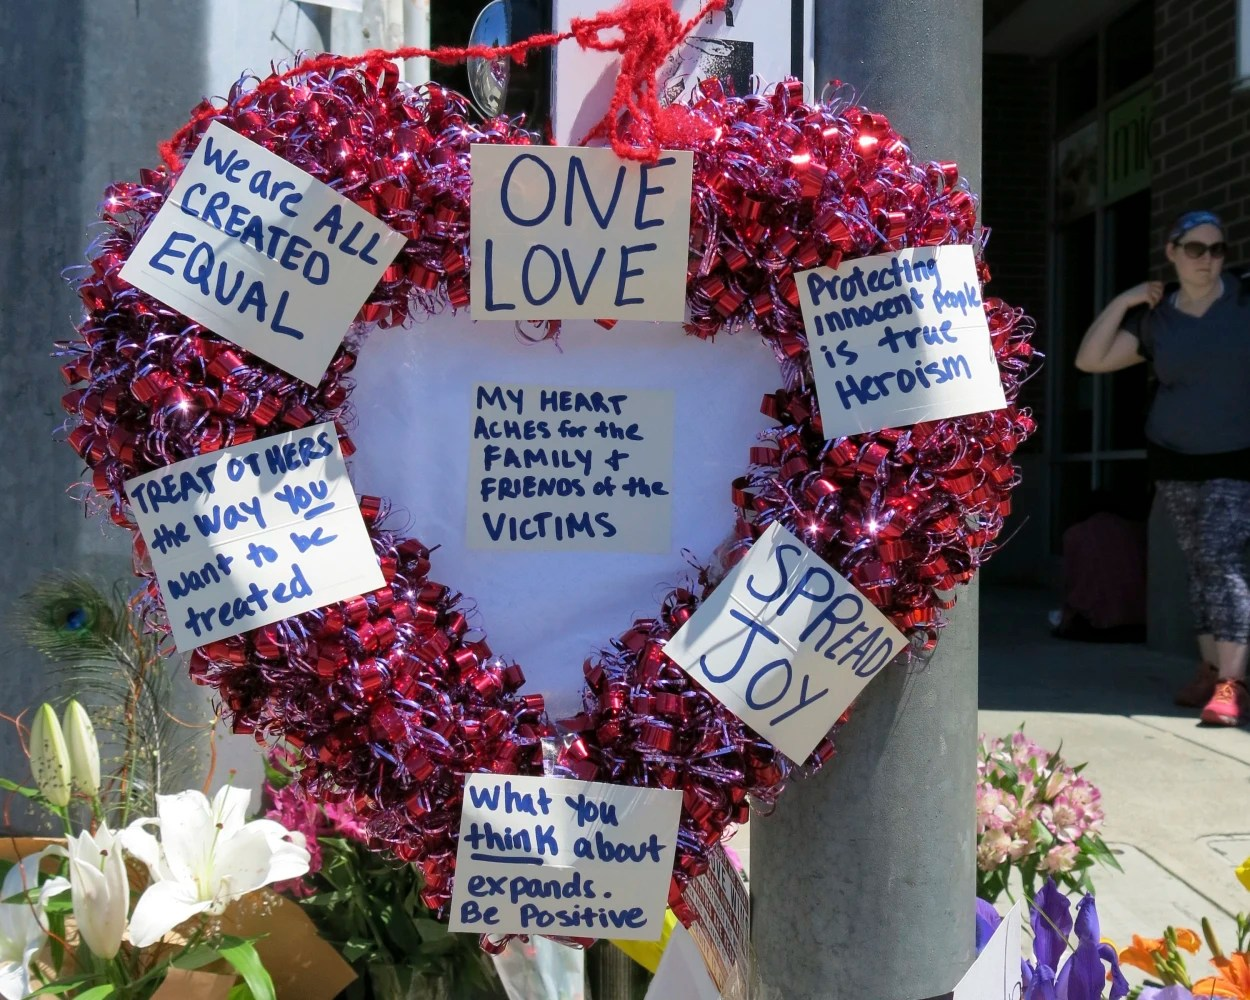 Portland stabbing attack survivor tells city's Muslim community they 'are loved'